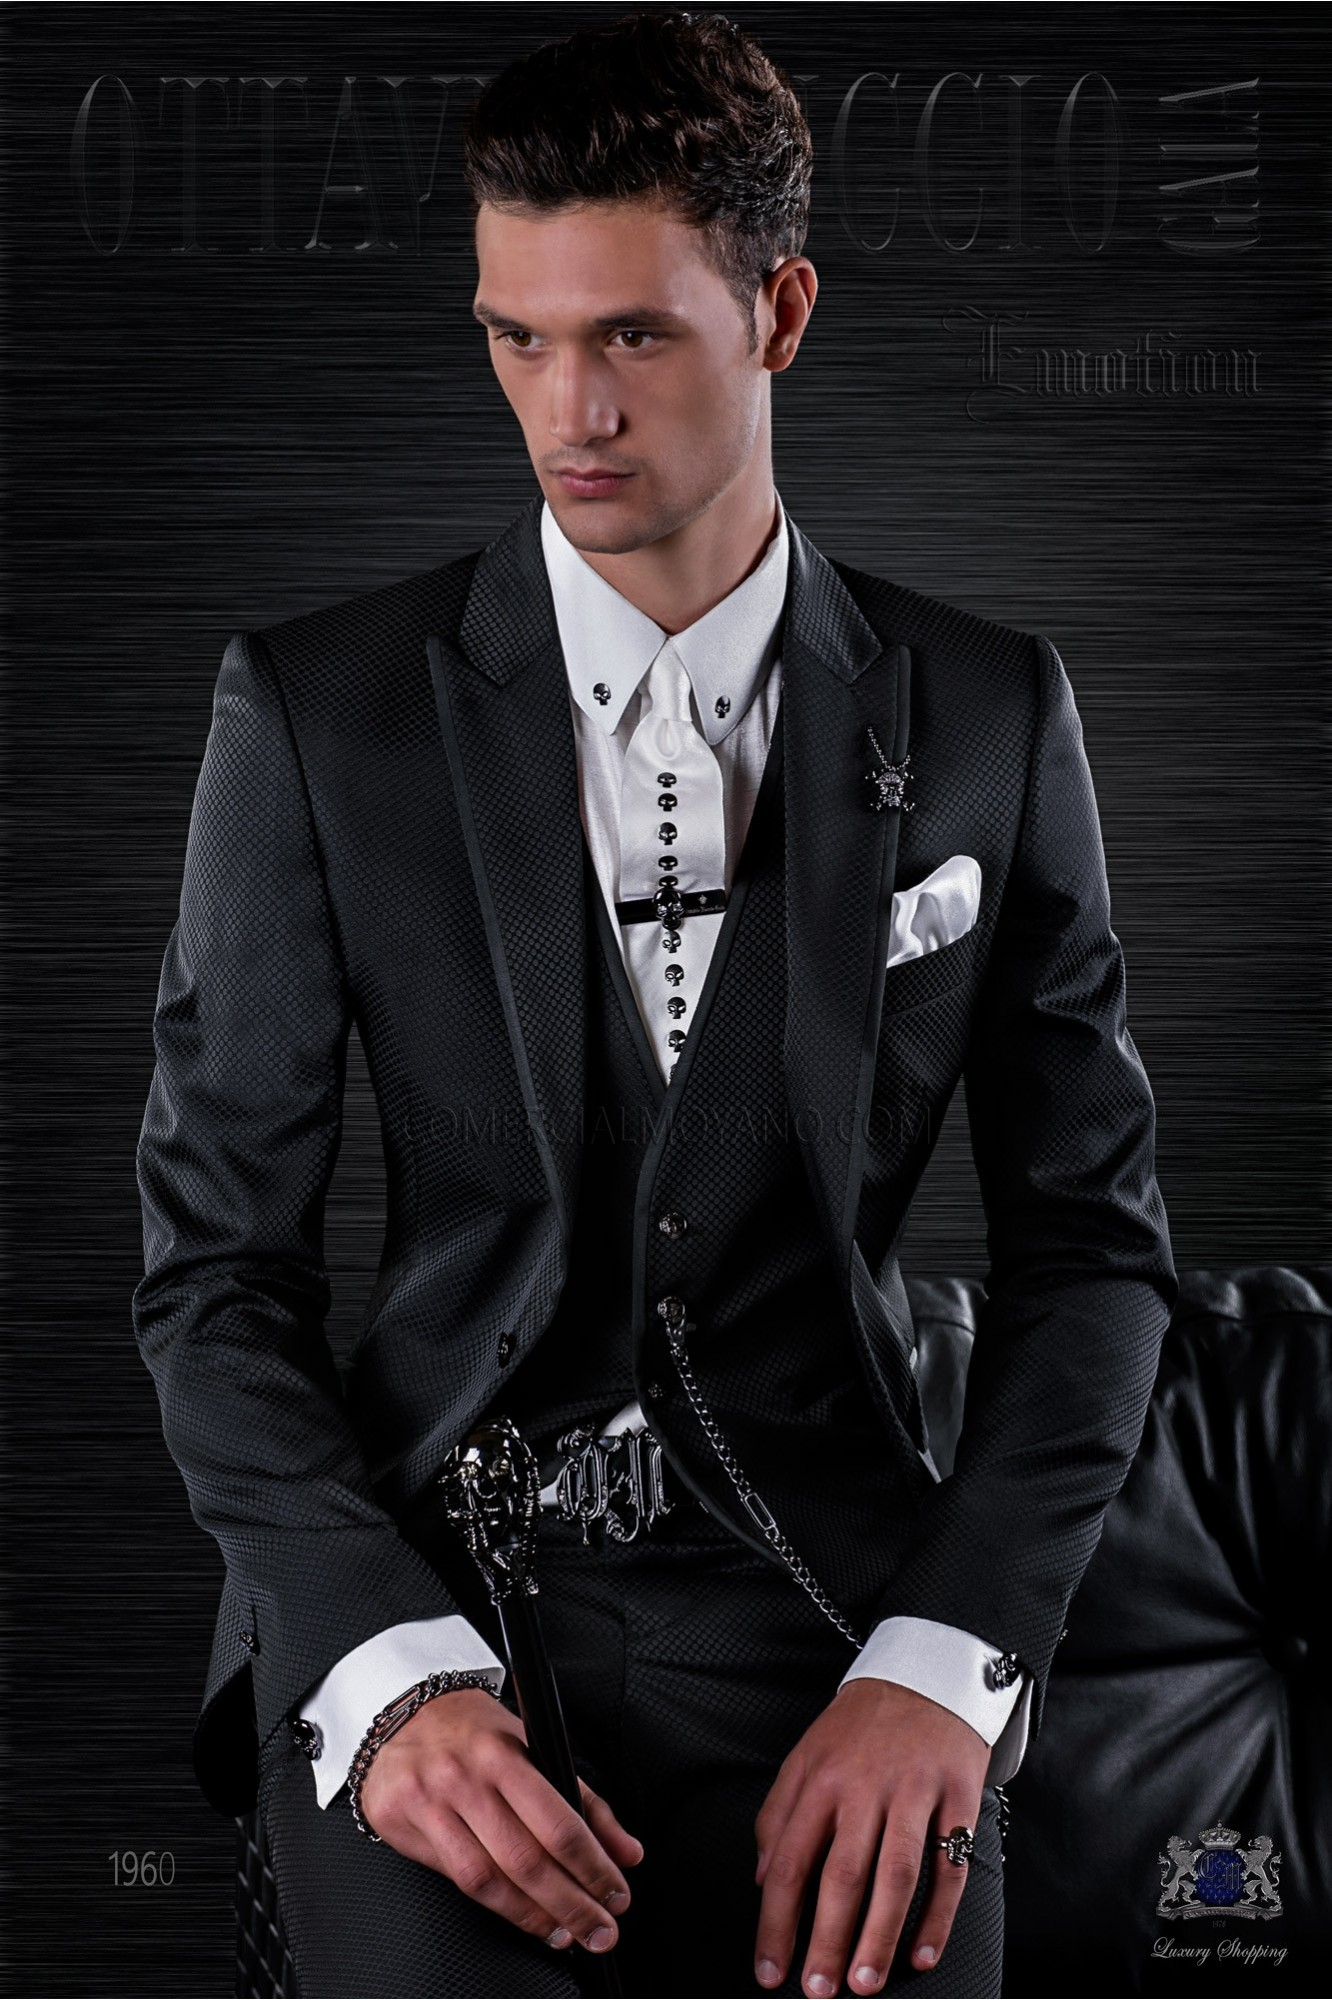 Fashion italian bespoke suit black micro design with waistcoat model 1960 Ottavio Nuccio Gala